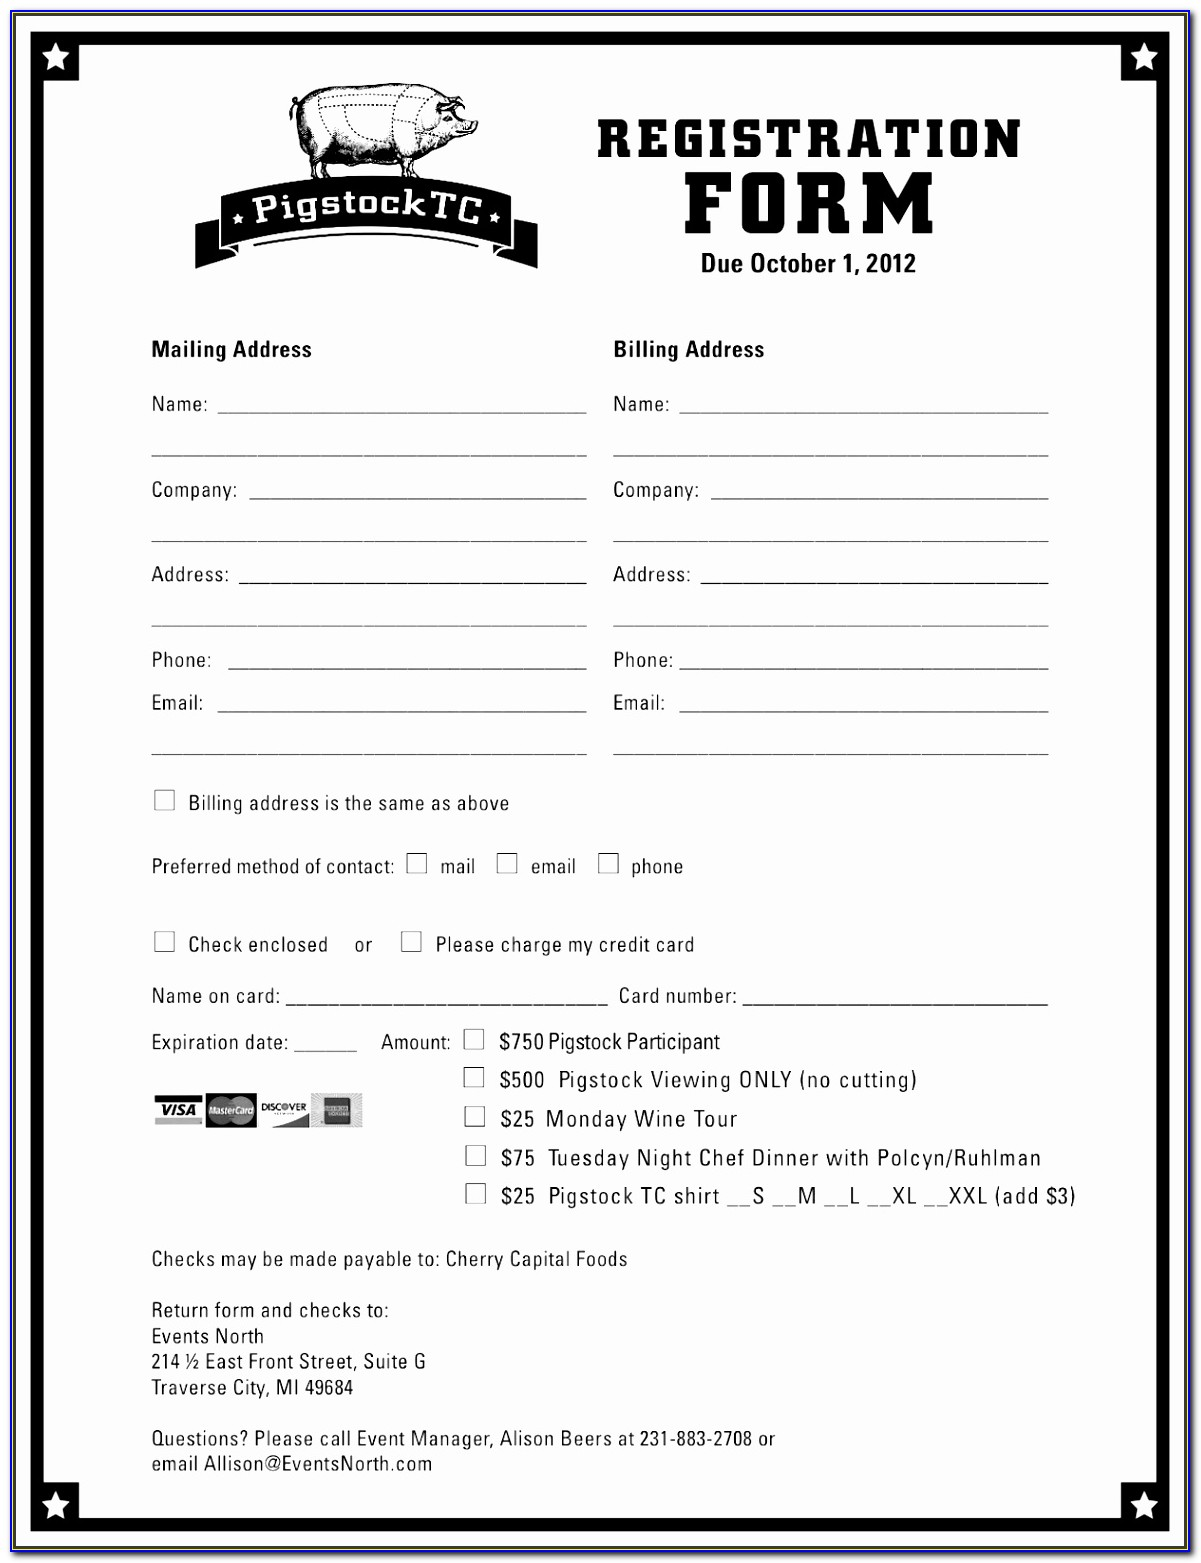 Free Sports Registration Form Template Cgoua Inspirational Sports Registration Form Template Word Papel Lenguasalacarta